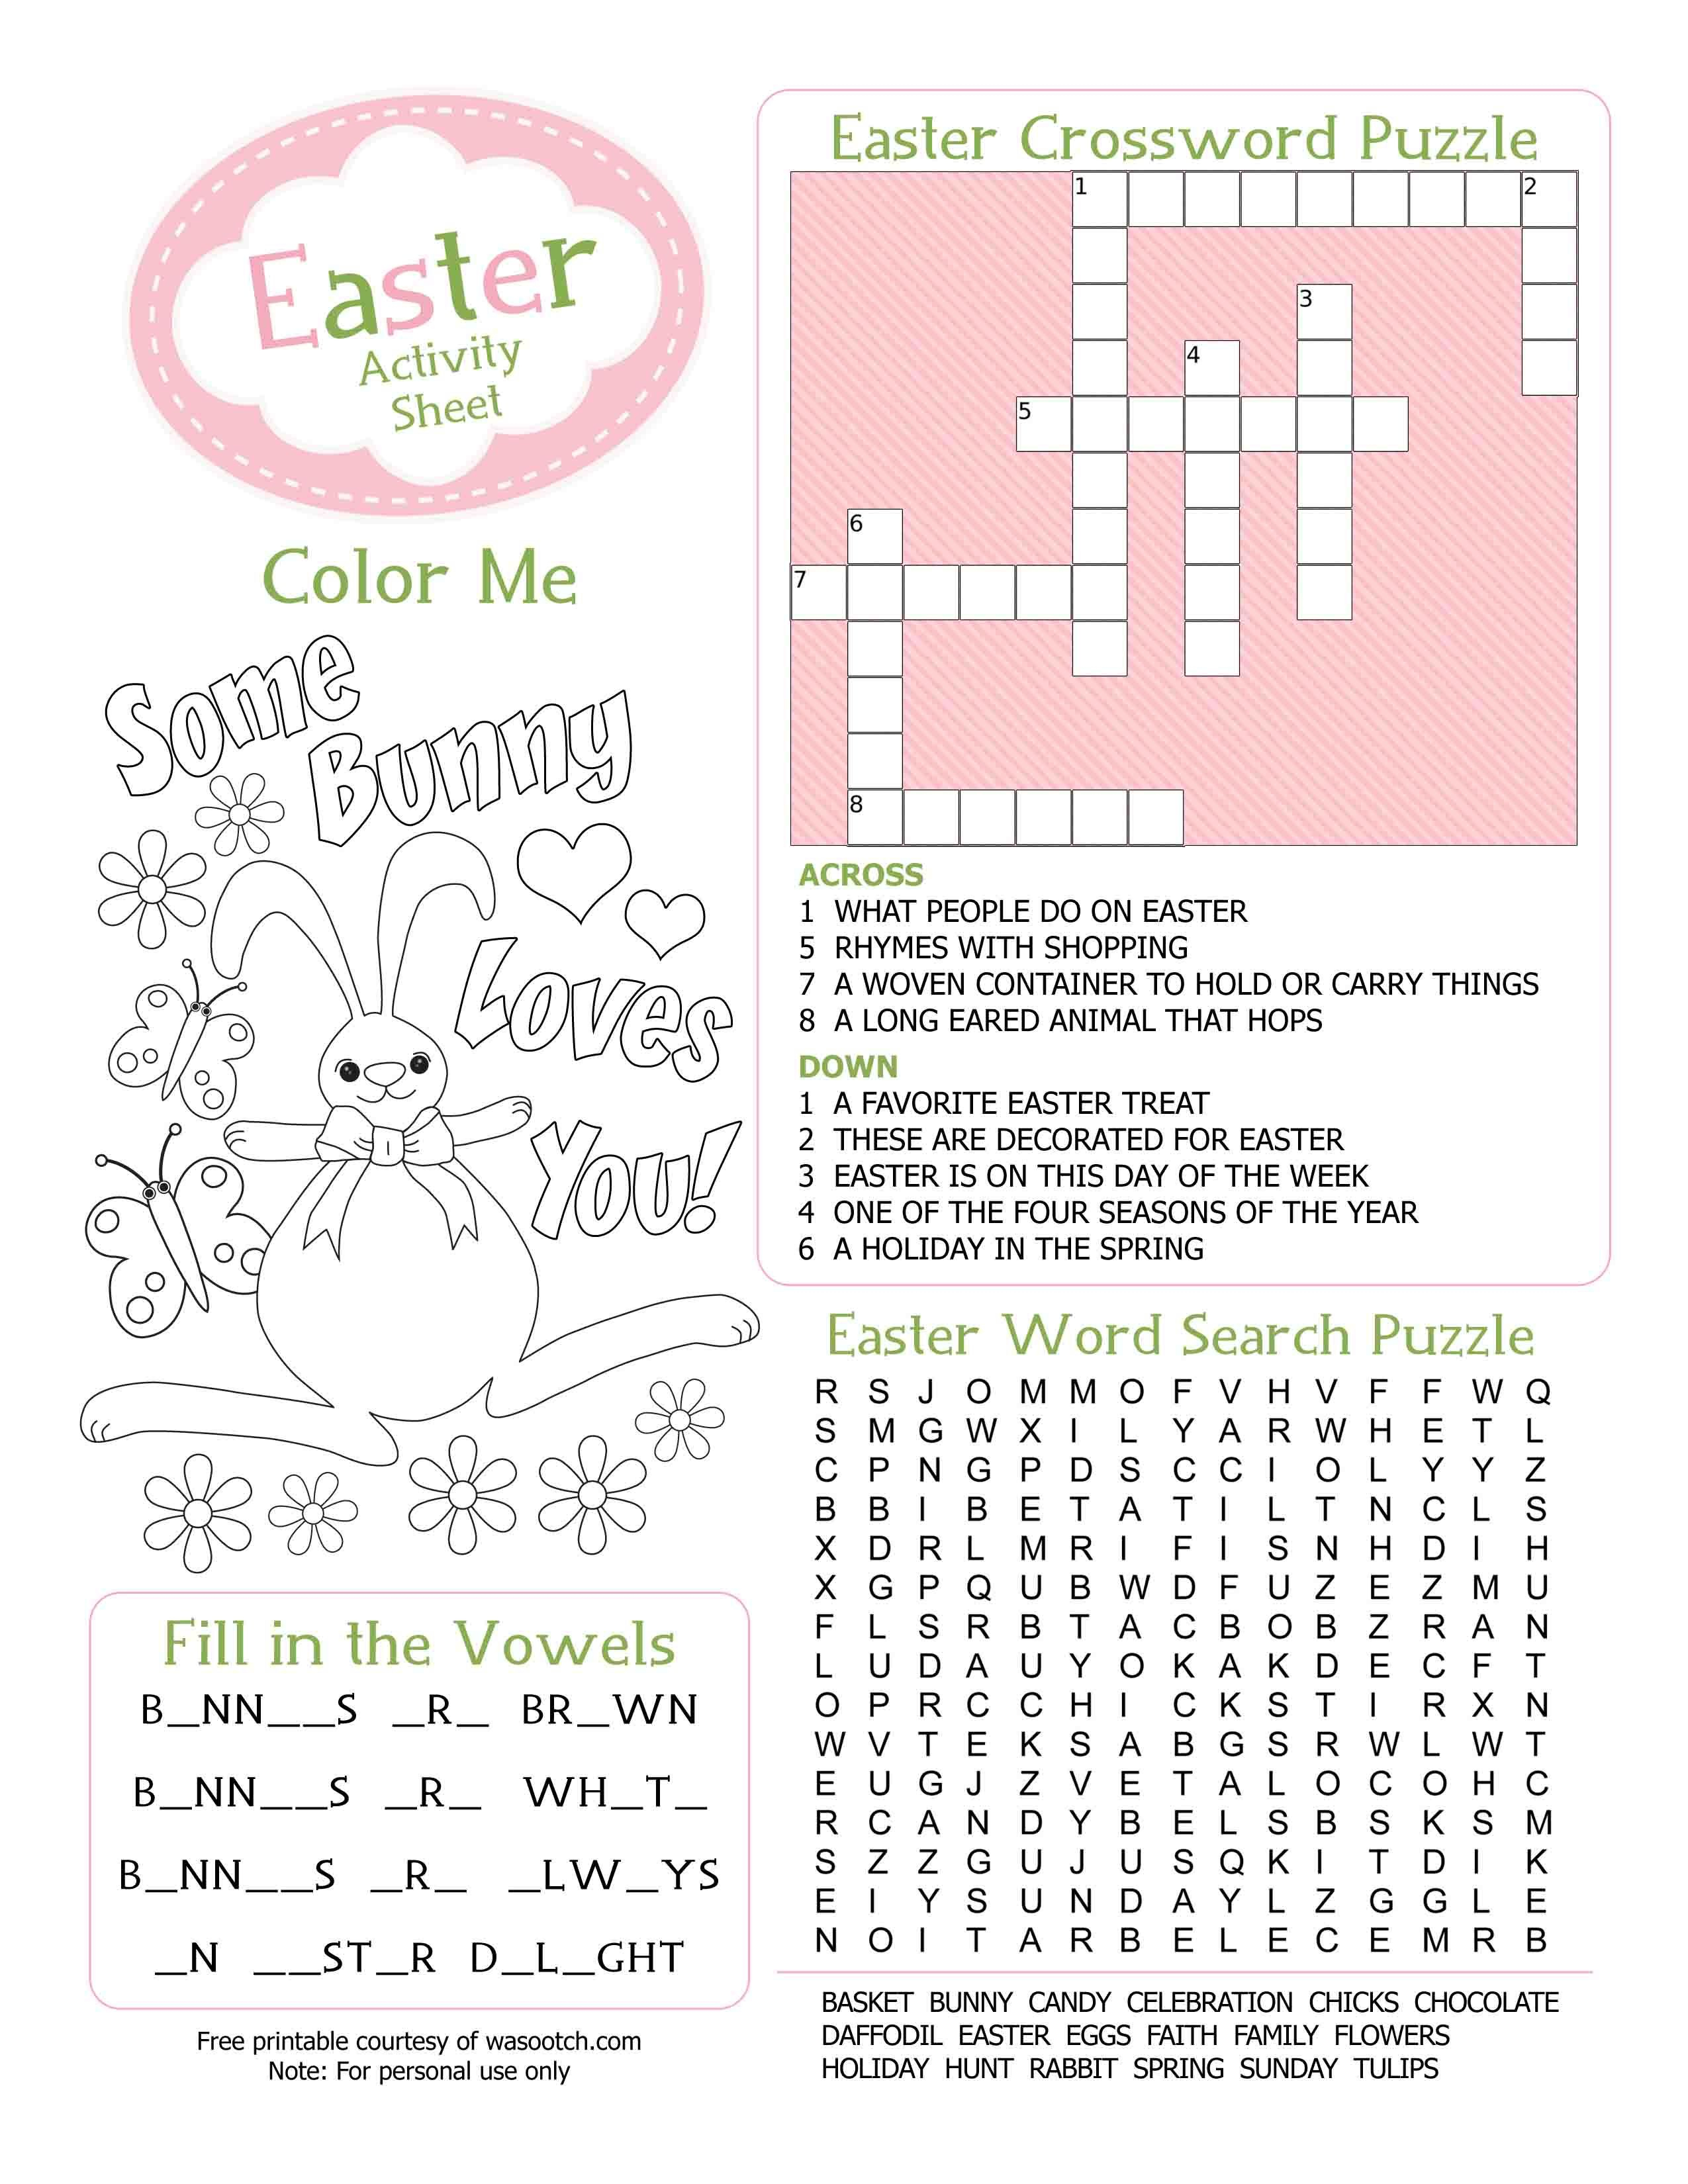 Easter Kid's Activity Sheet Free Printables Available @party | Free Printable Kid Activities Worksheets